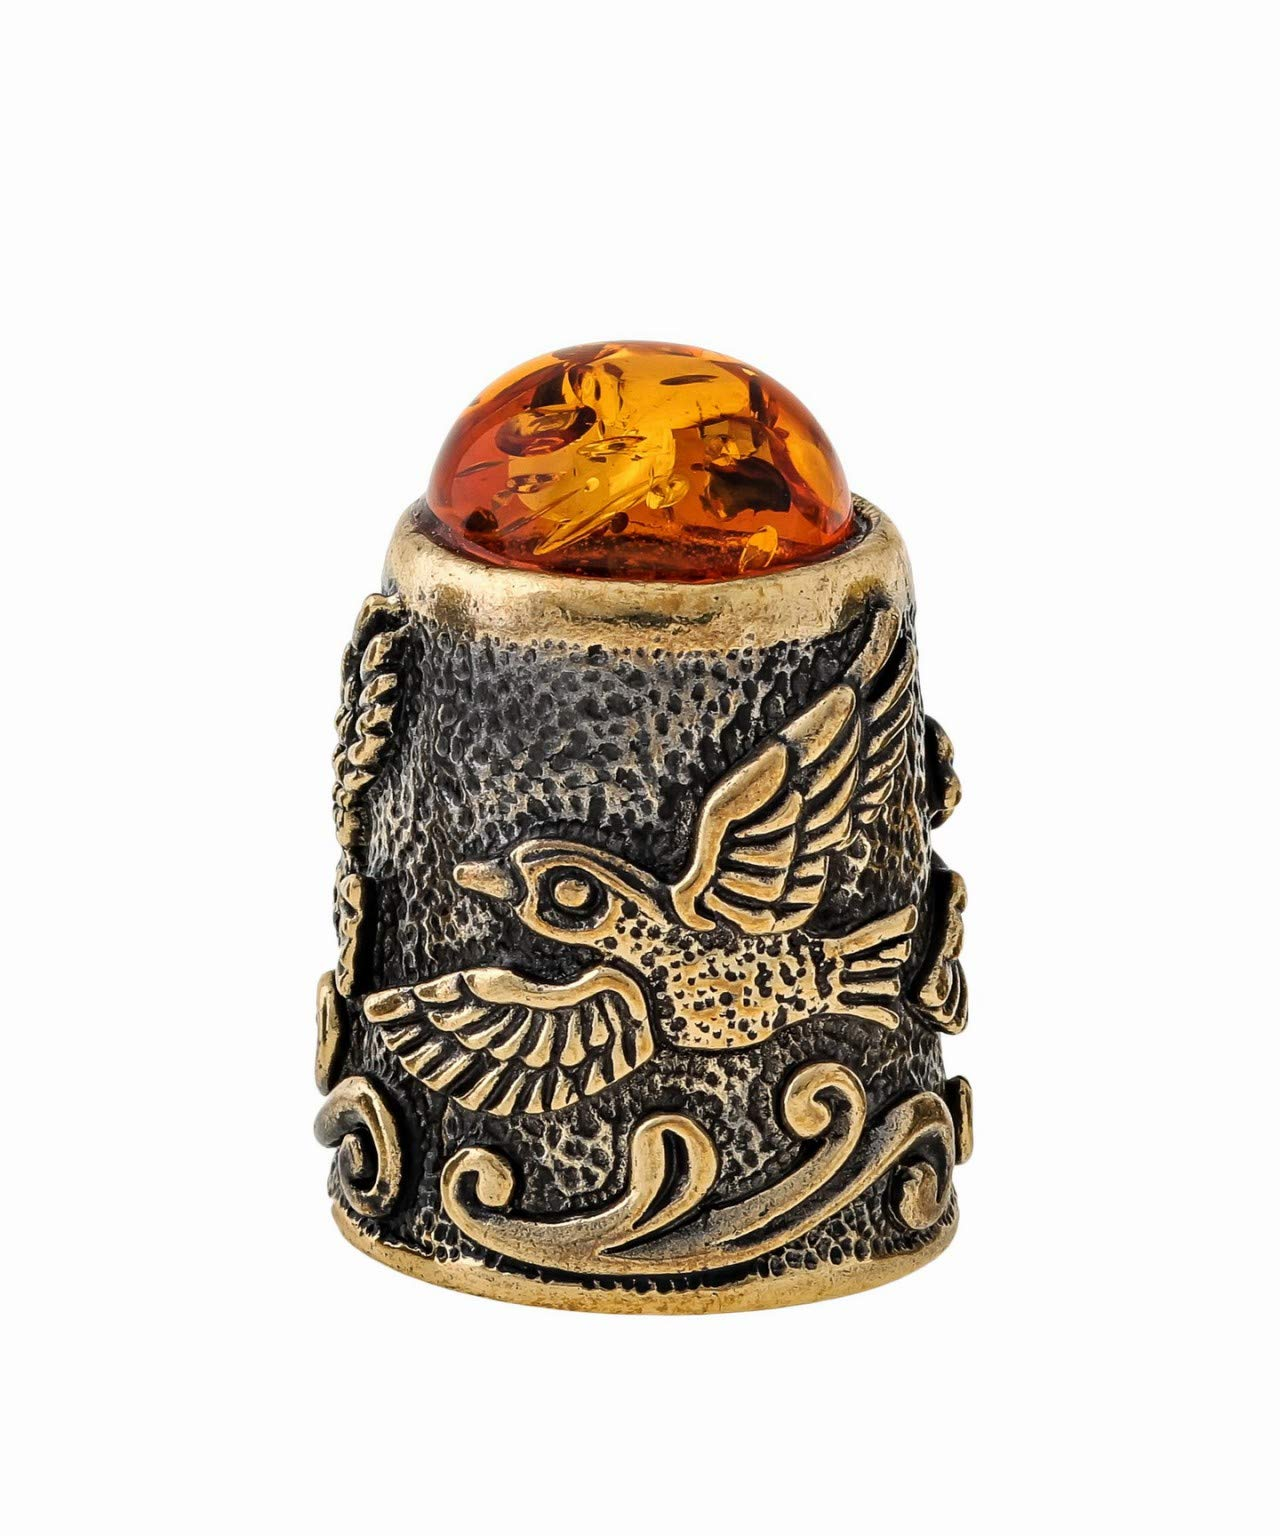 Amber and Brass Collectible Thimble (Bird) Decorative Souvenir Thimbles. Antique and Vintage Designs from Kaliningrad, Russia.Packed in a Beautiful Siberian Birch Bark Gift Box(Random Selection) by Brass and Amber Art